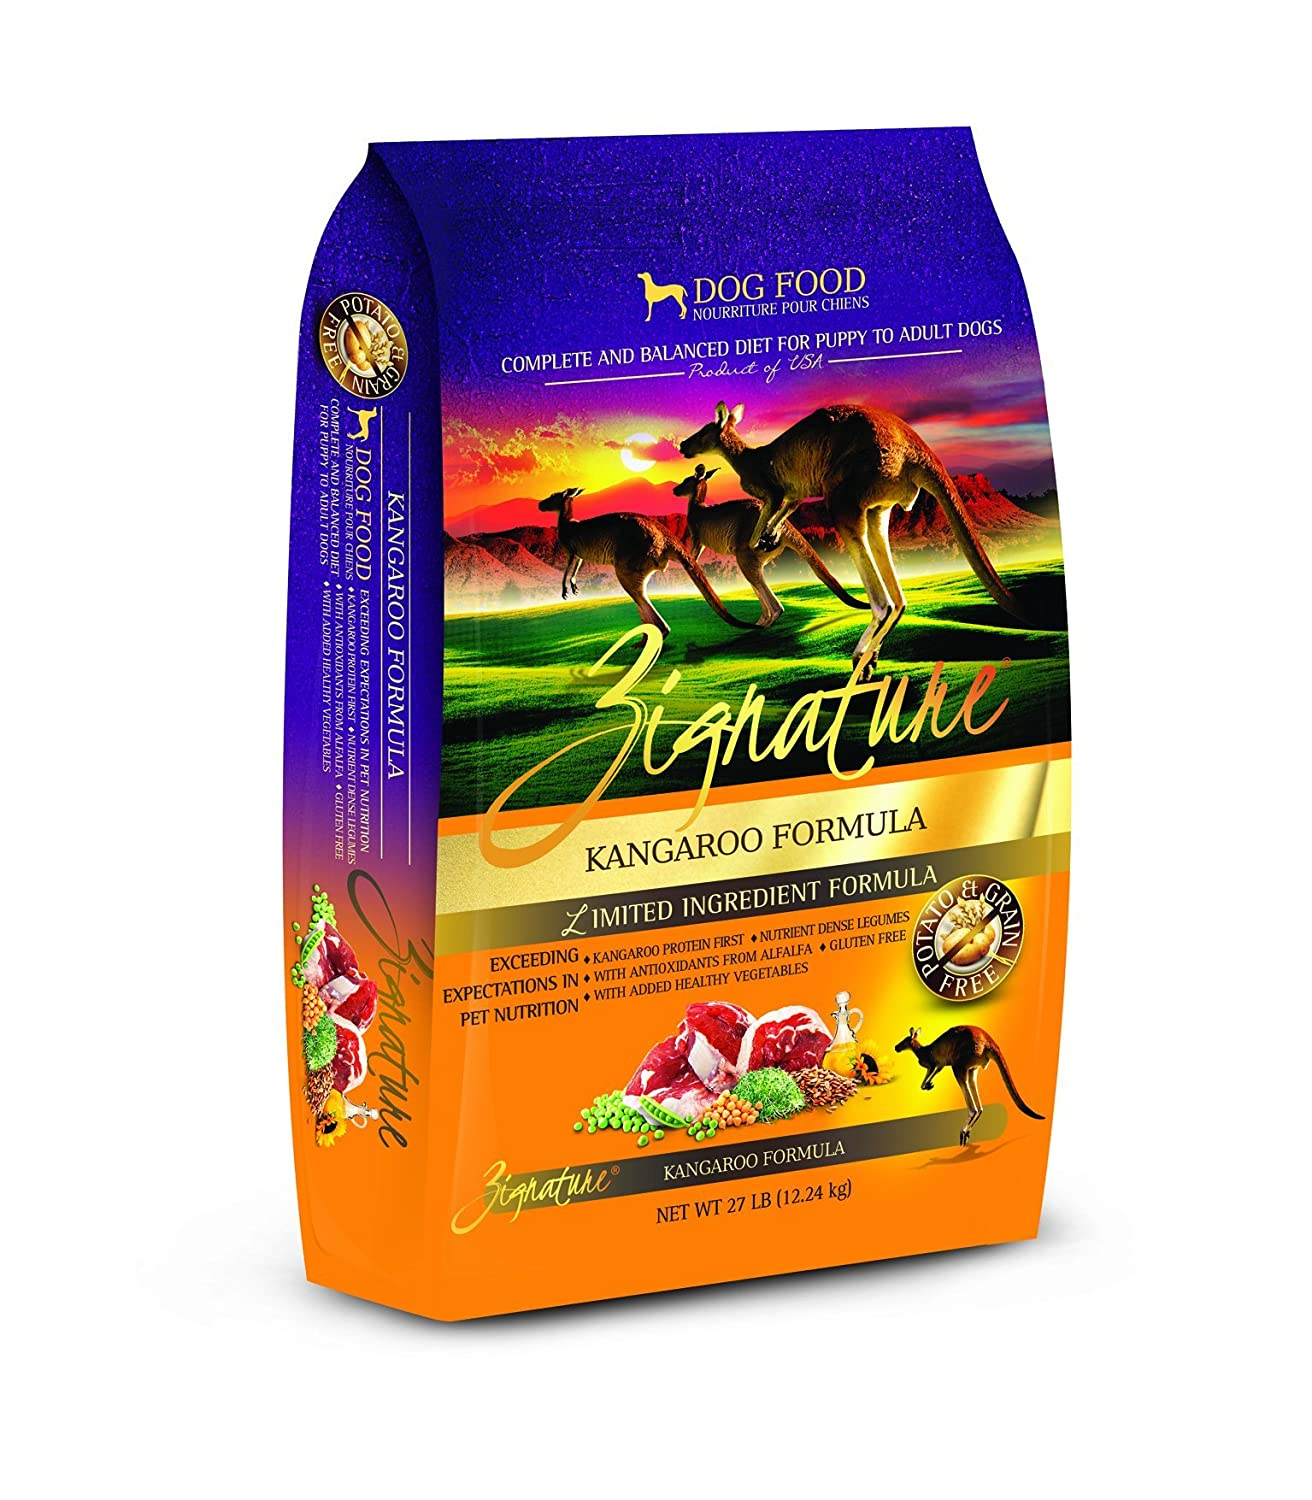 Dry Dog Food Ingredients